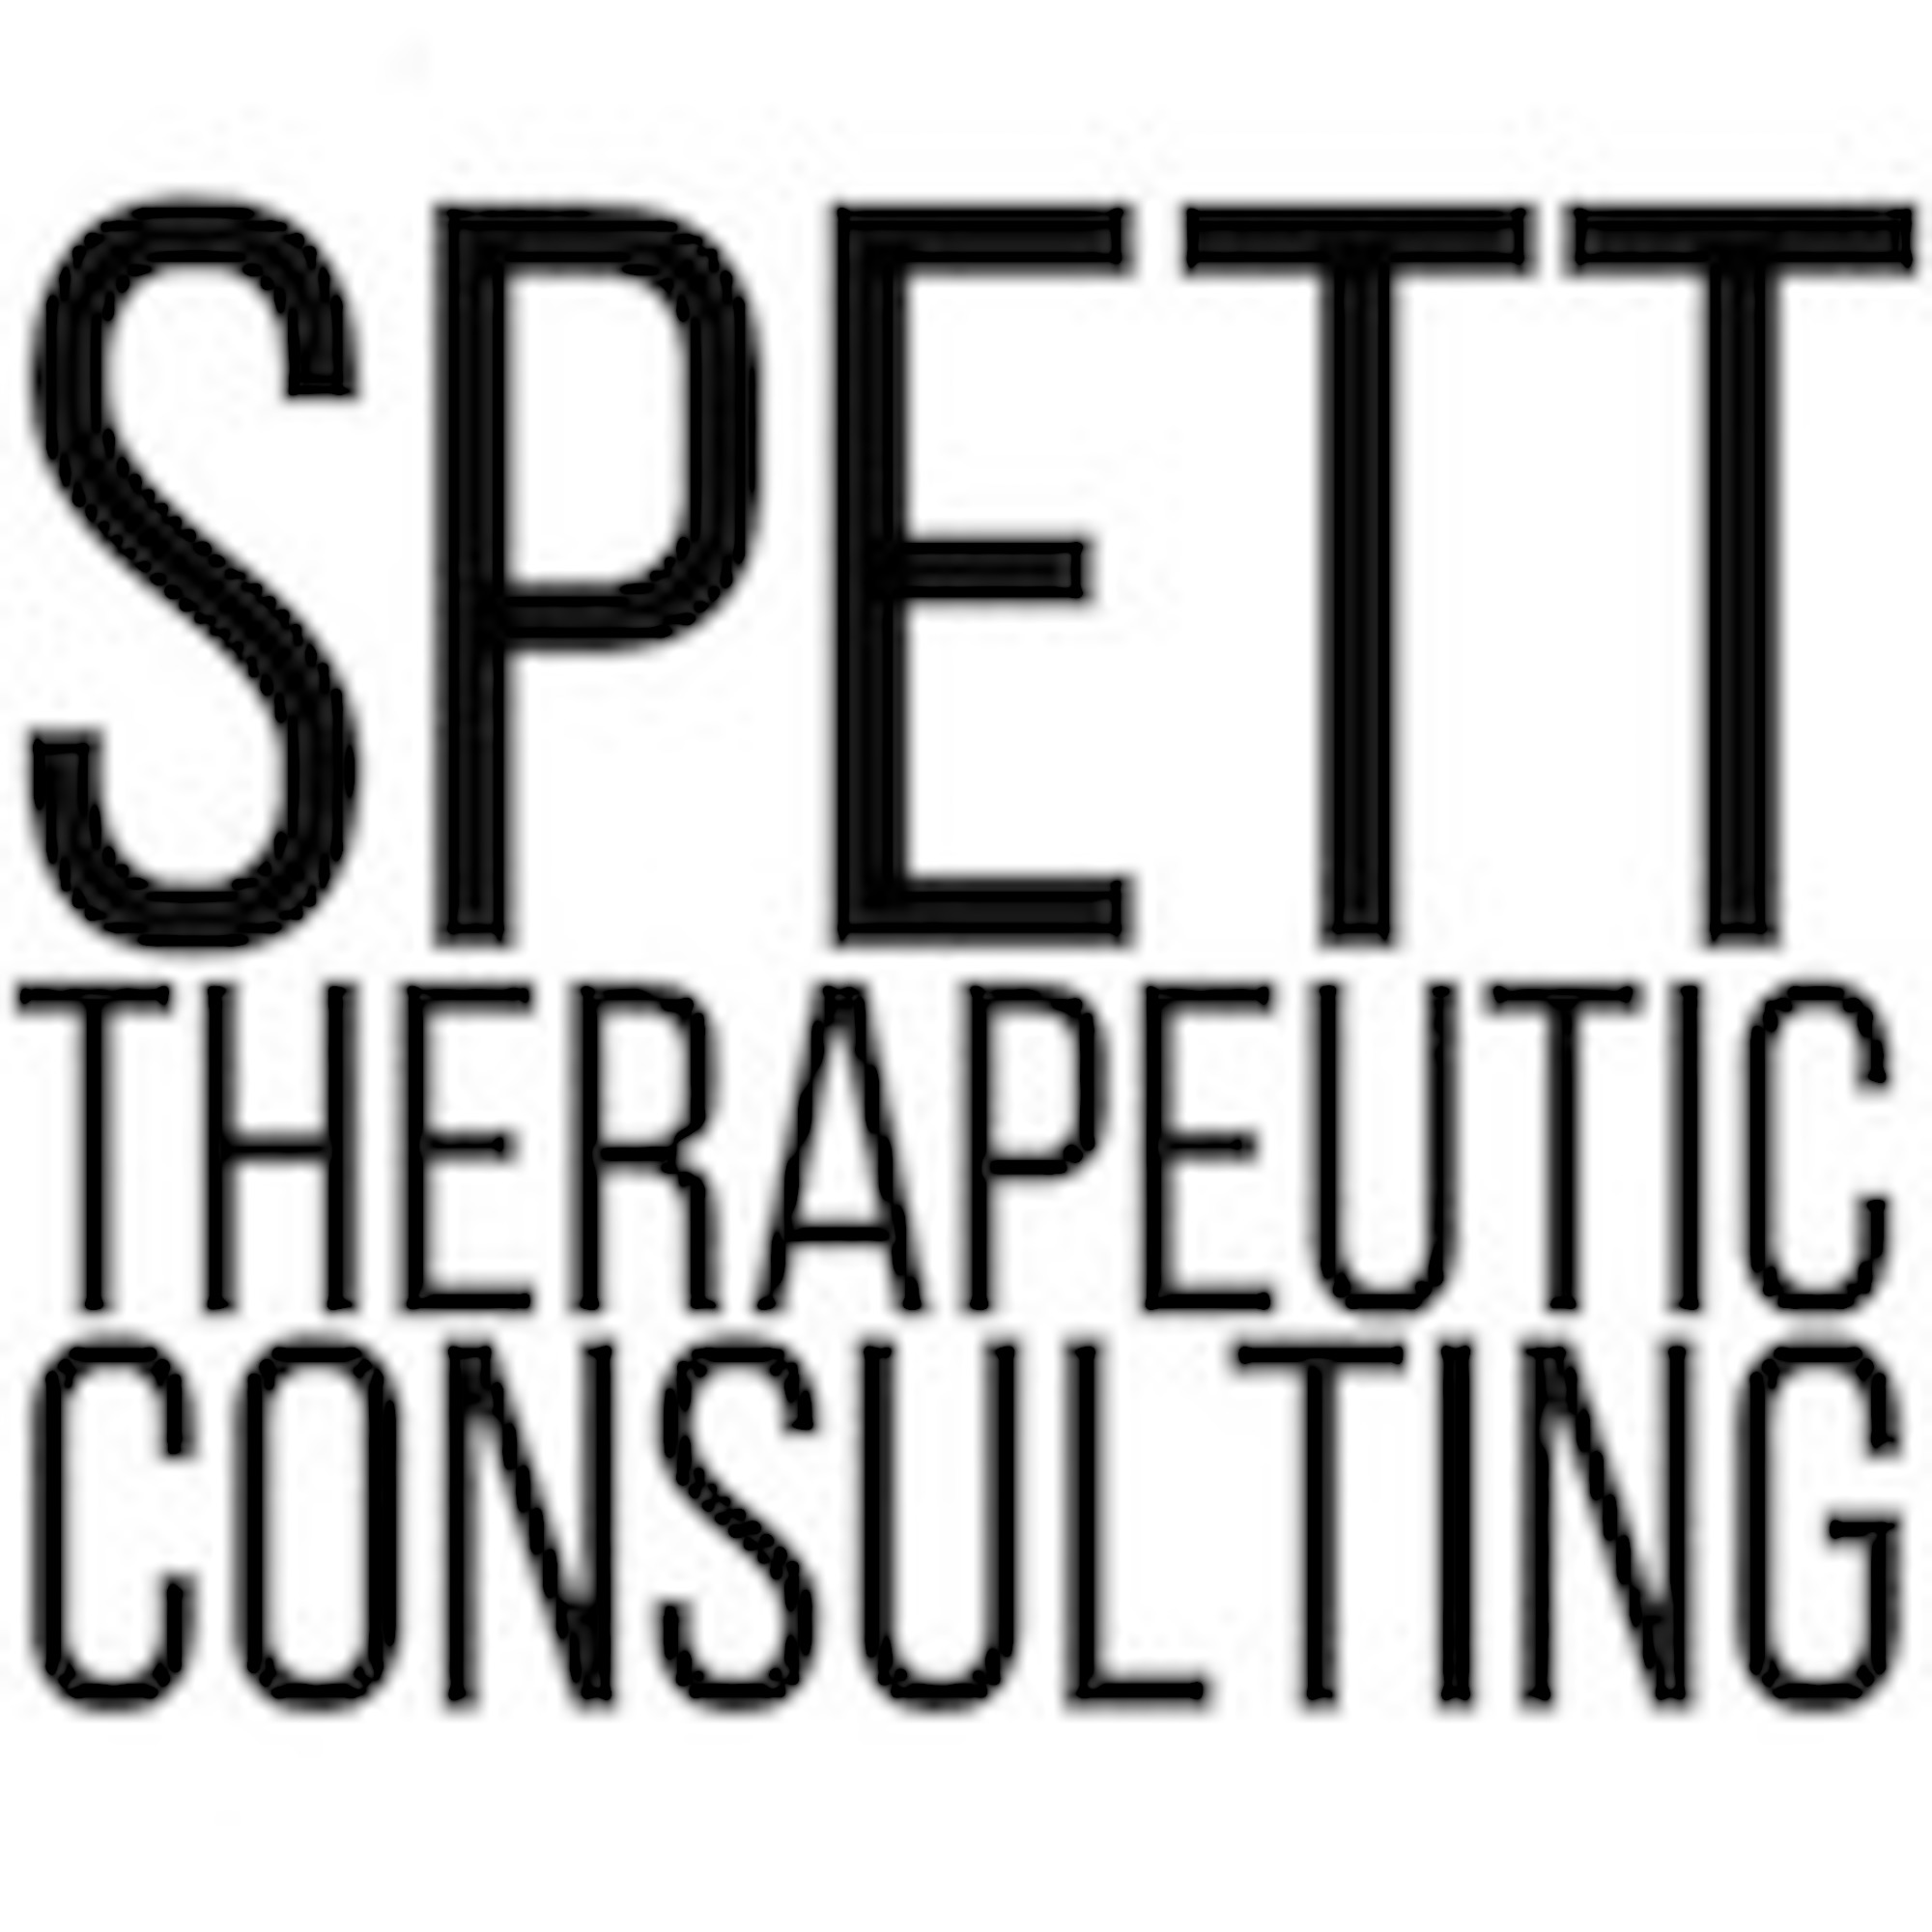 Soett Therapeutic Consulting